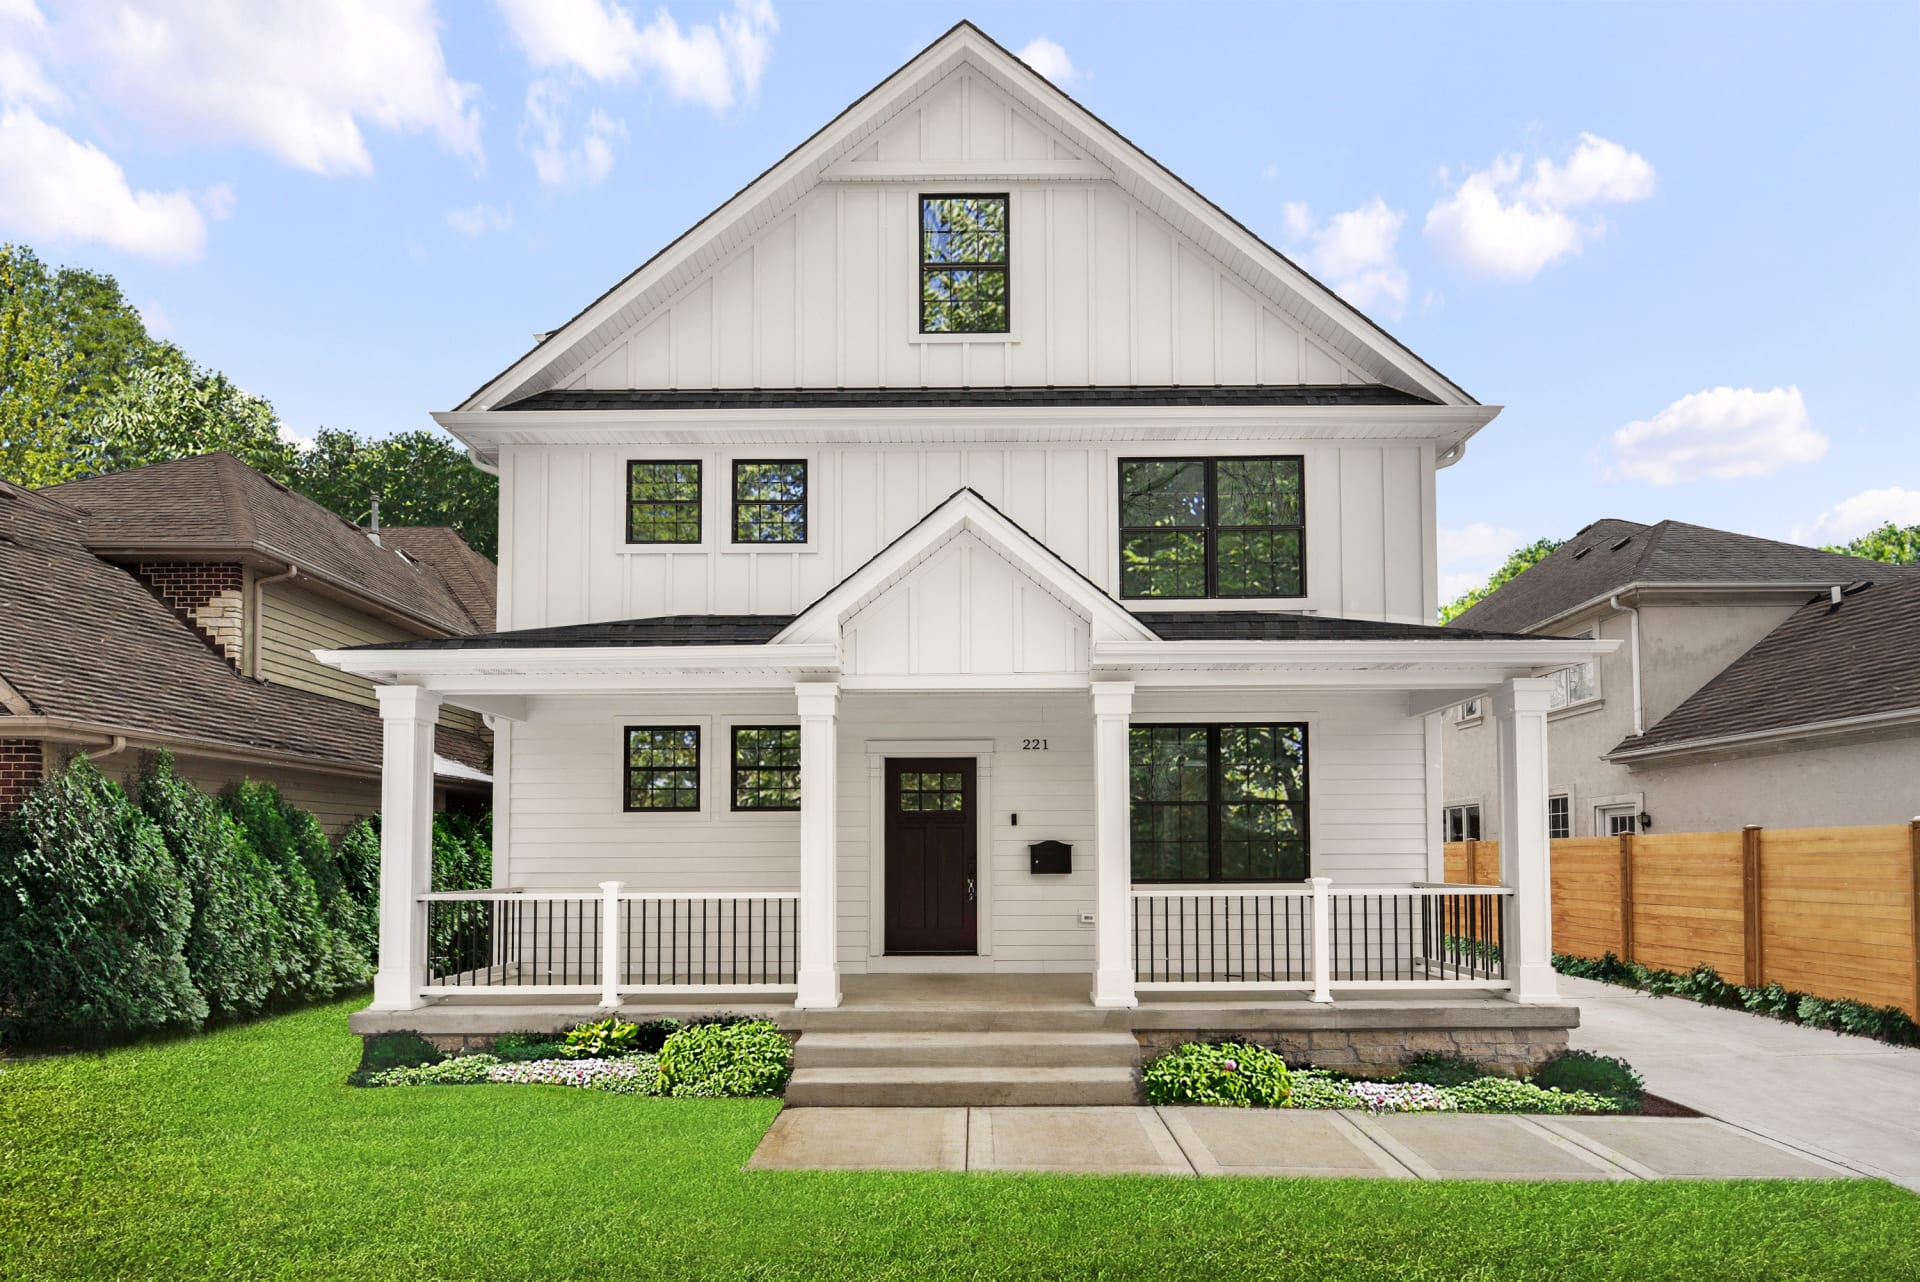 New construction home with all the bells and whistles